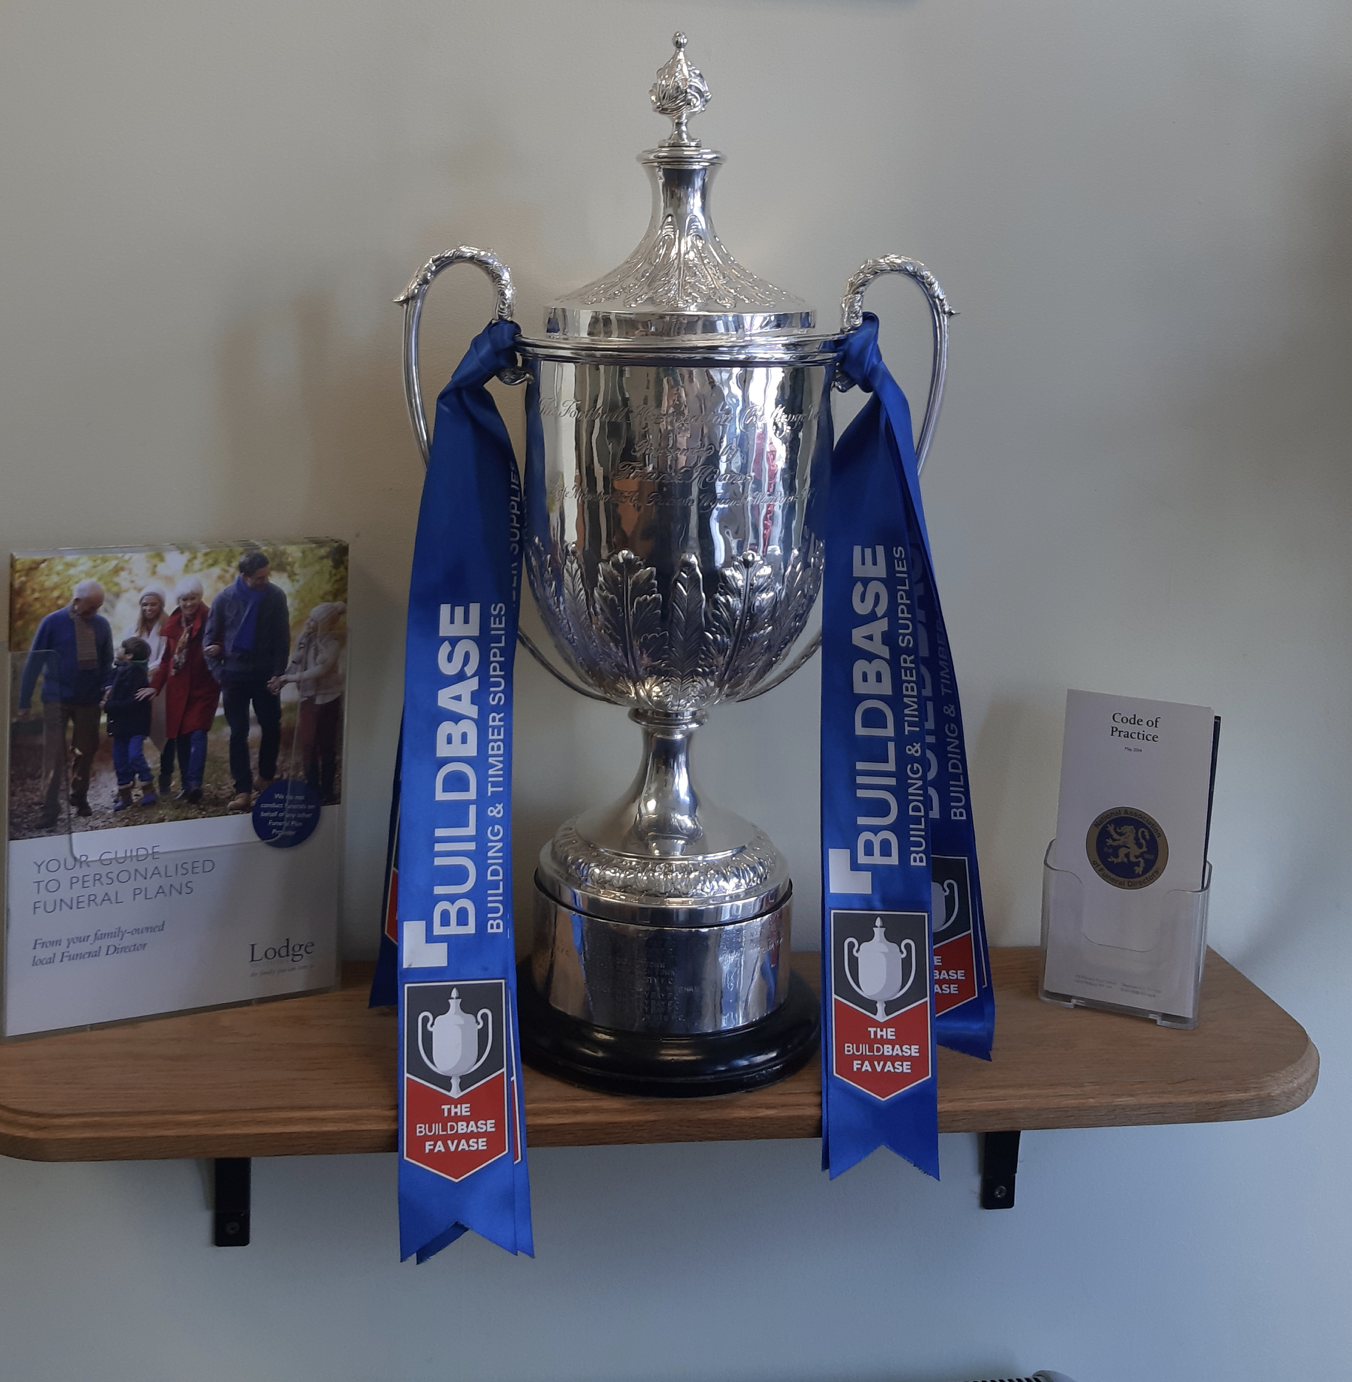 Chertsey Town Football Club – WINNERS!